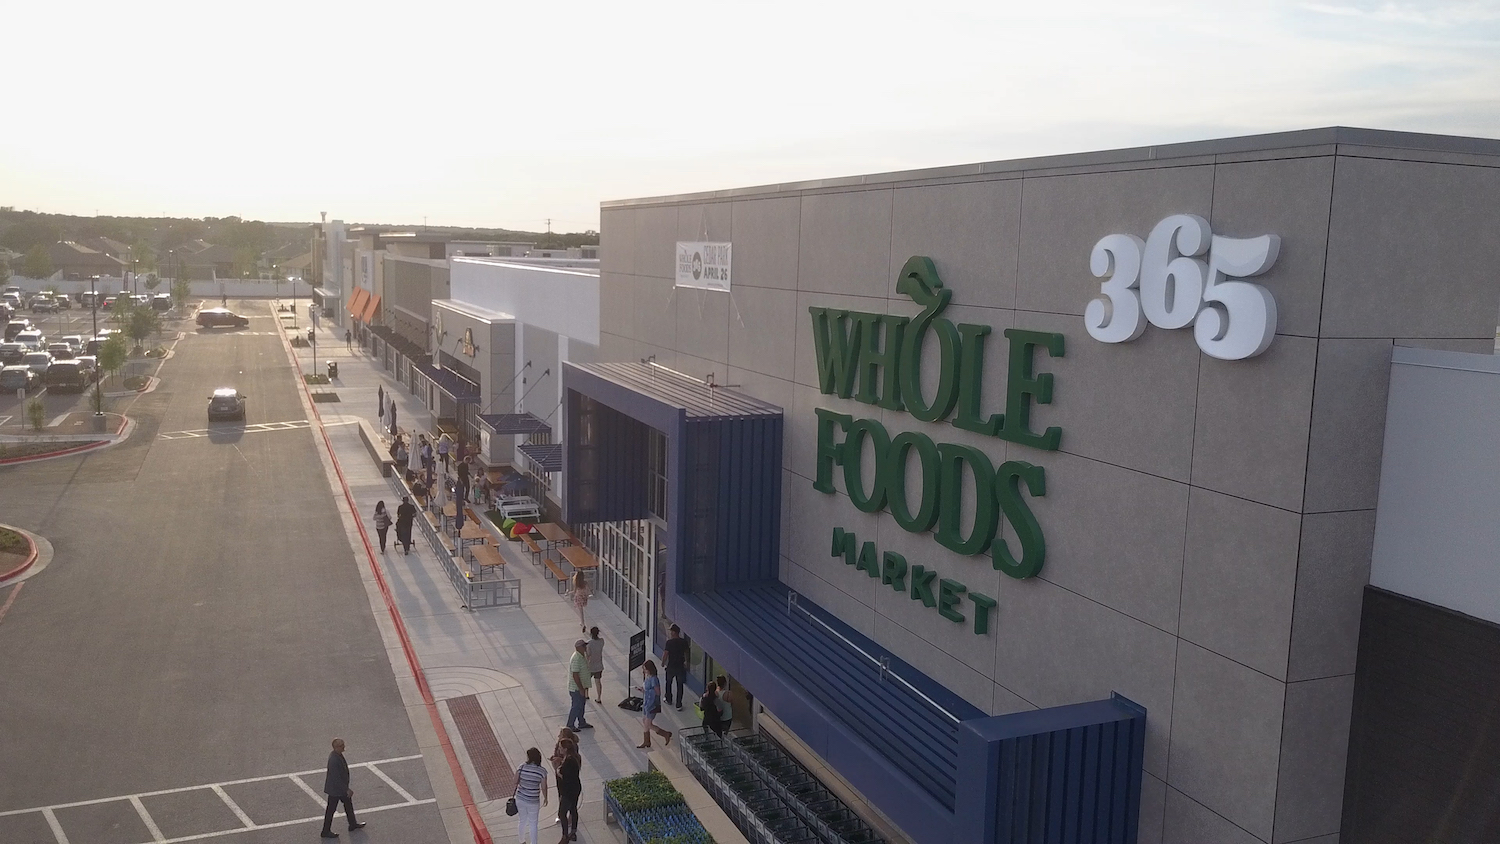 newfoodeconomy.org - Joe Fassler - With 365 over, Whole Foods cements its future as Amazon's house brand